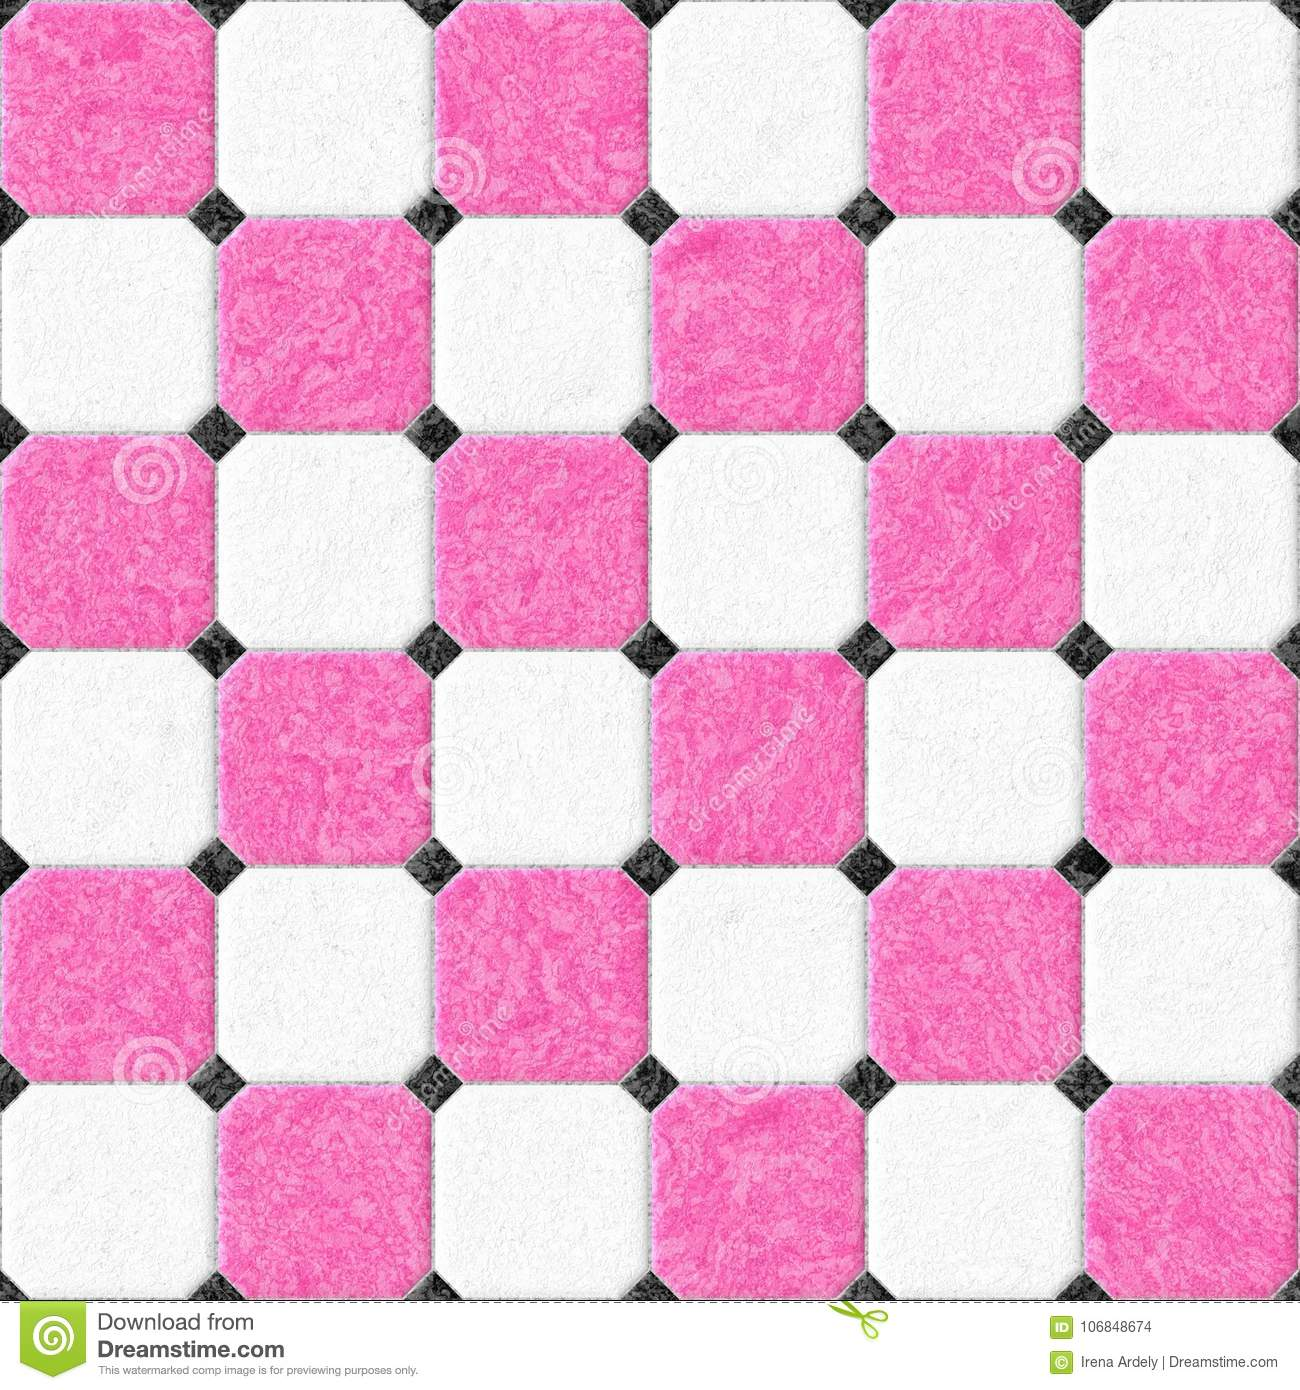 Marble floor tiles with black rhombs and gray gap seamless pattern marble floor tiles with black rhombs and gray gap seamless pattern texture background hot pink and white color dailygadgetfo Image collections